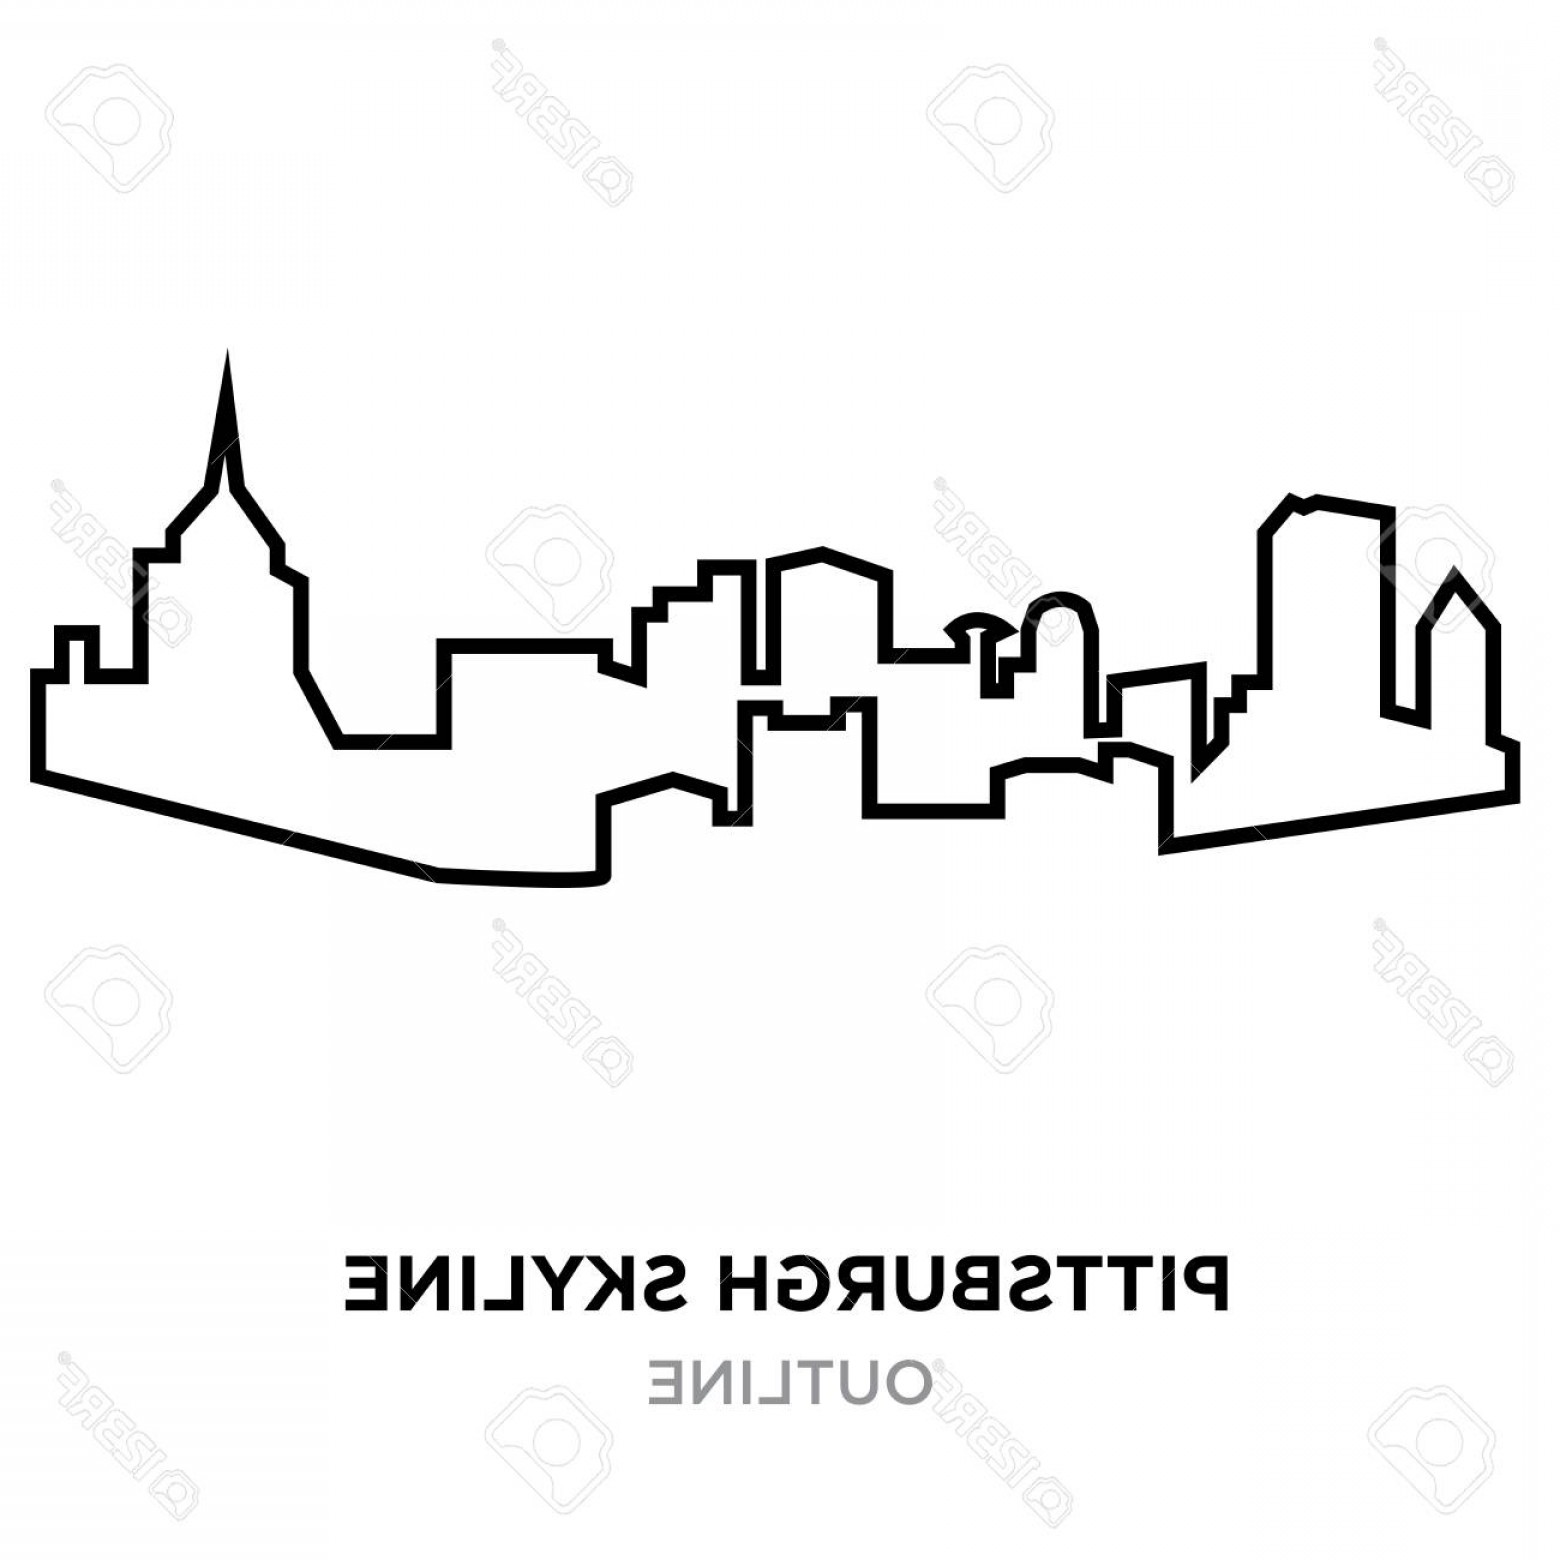 pittsburgh skyline outline pittsburgh skyline illustrations royalty free vector skyline outline pittsburgh